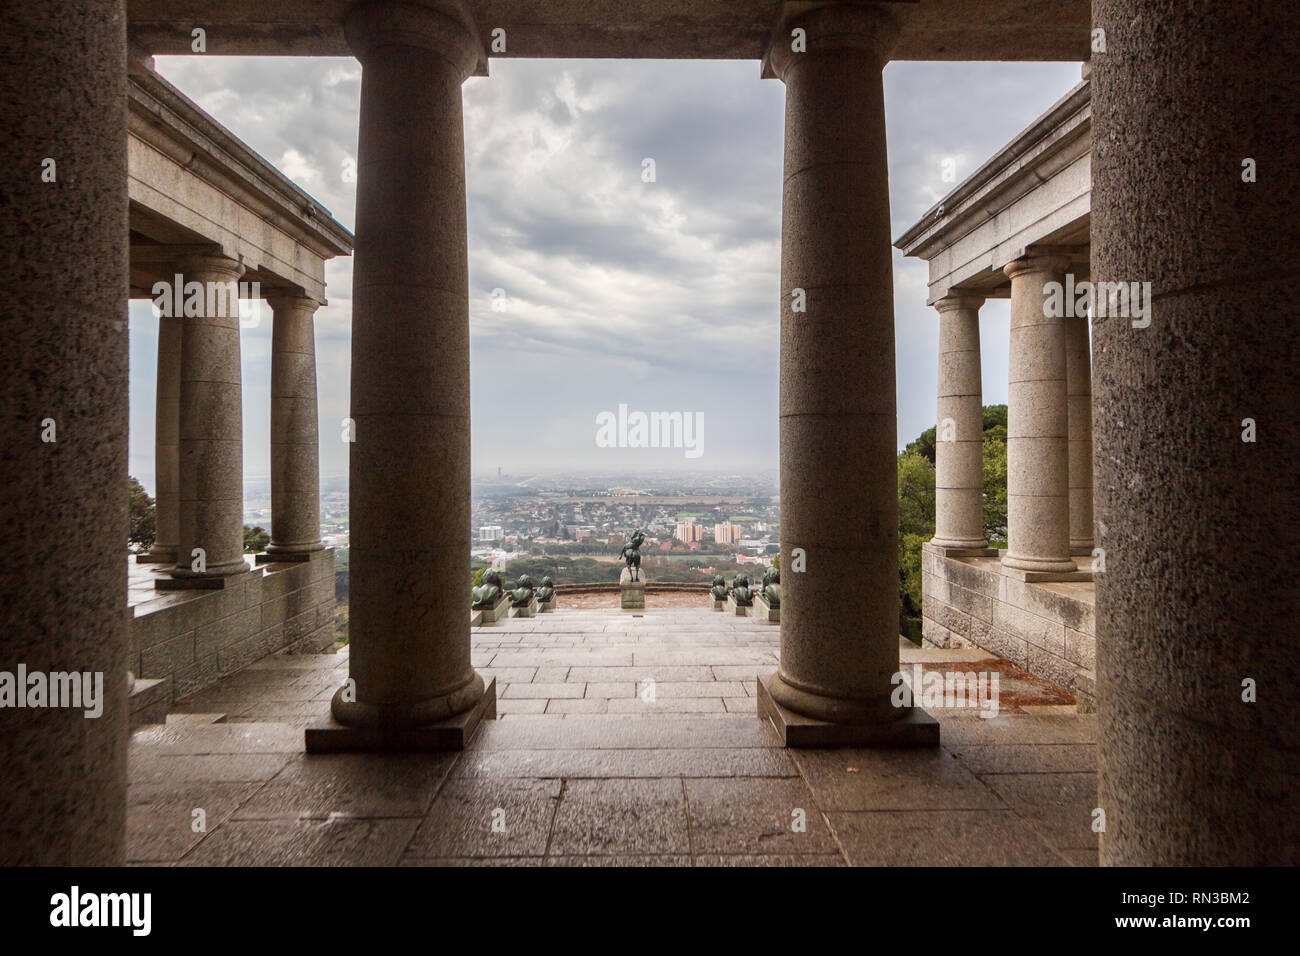 Rhodes Memorial is a masssive stone monument on the slopes of Devil's Peak overlooking the Cape Town suburbs of Mowbray and Rondebosch, South Africa. - Stock Image